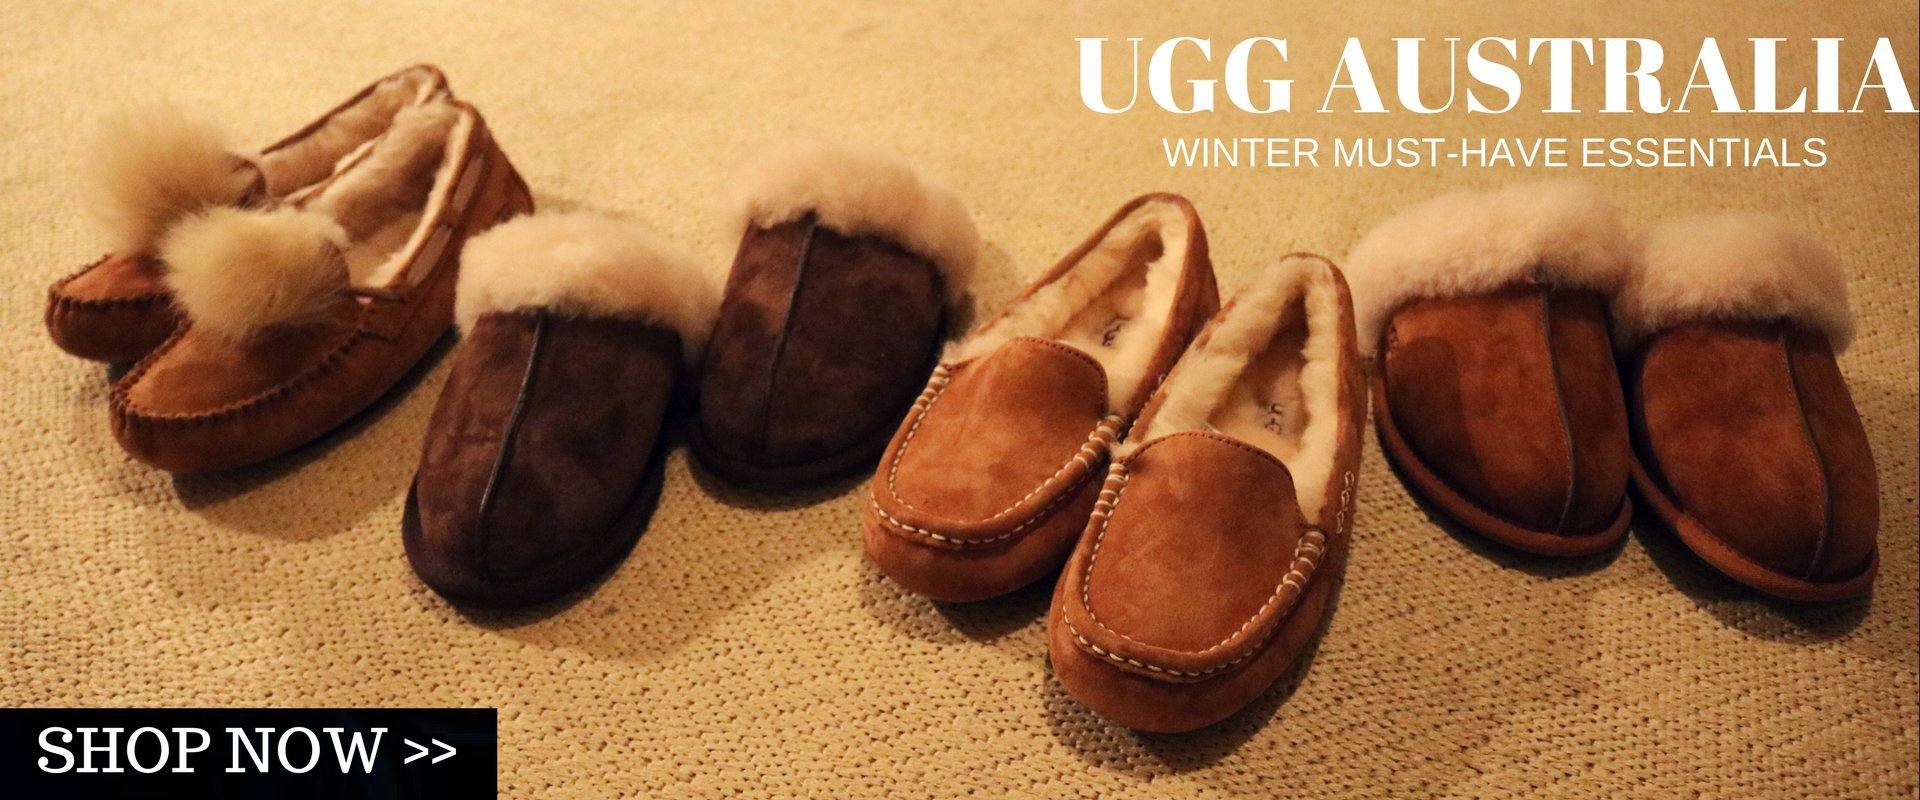 Shop our Ugg collection